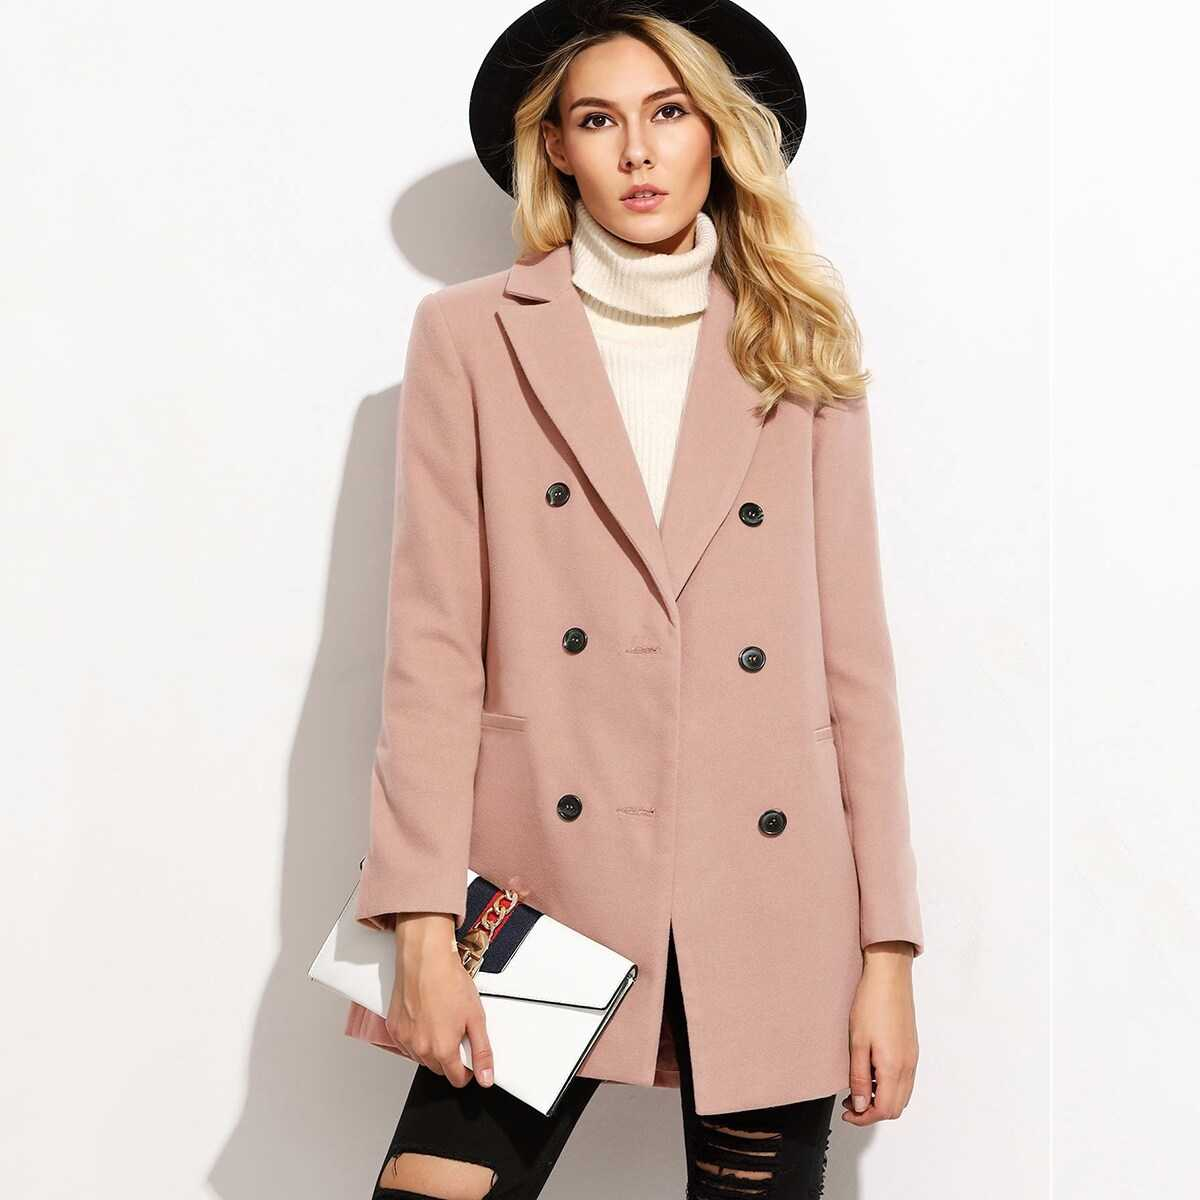 Double Breasted Notched Coat in Pink by ROMWE on GOOFASH